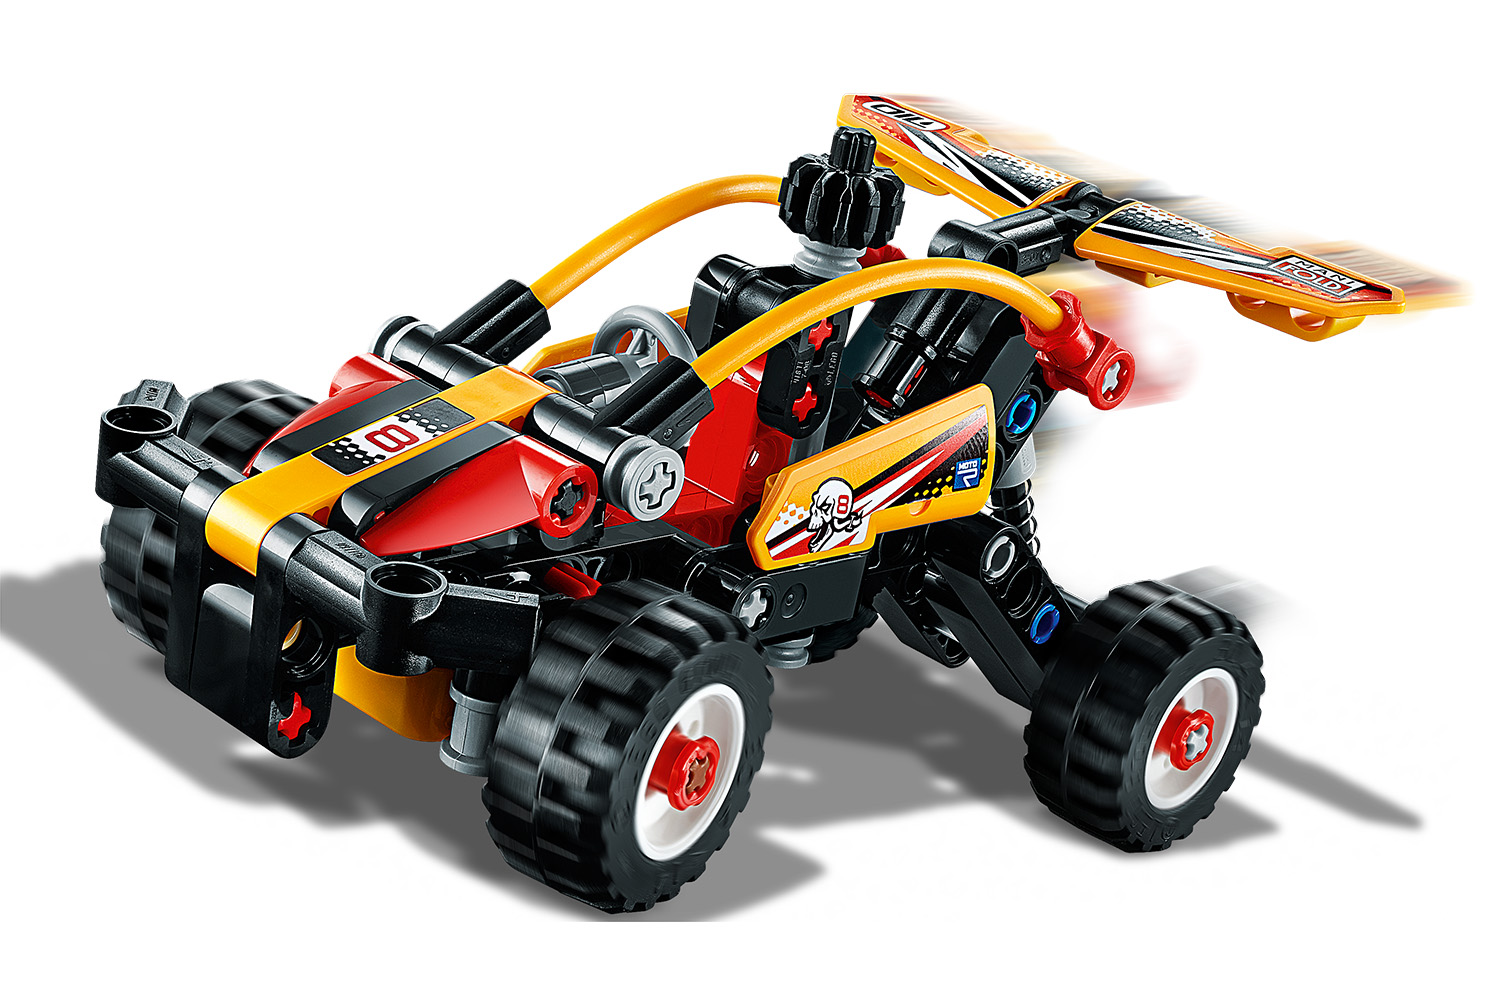 LEGO® Technic Strandbuggy